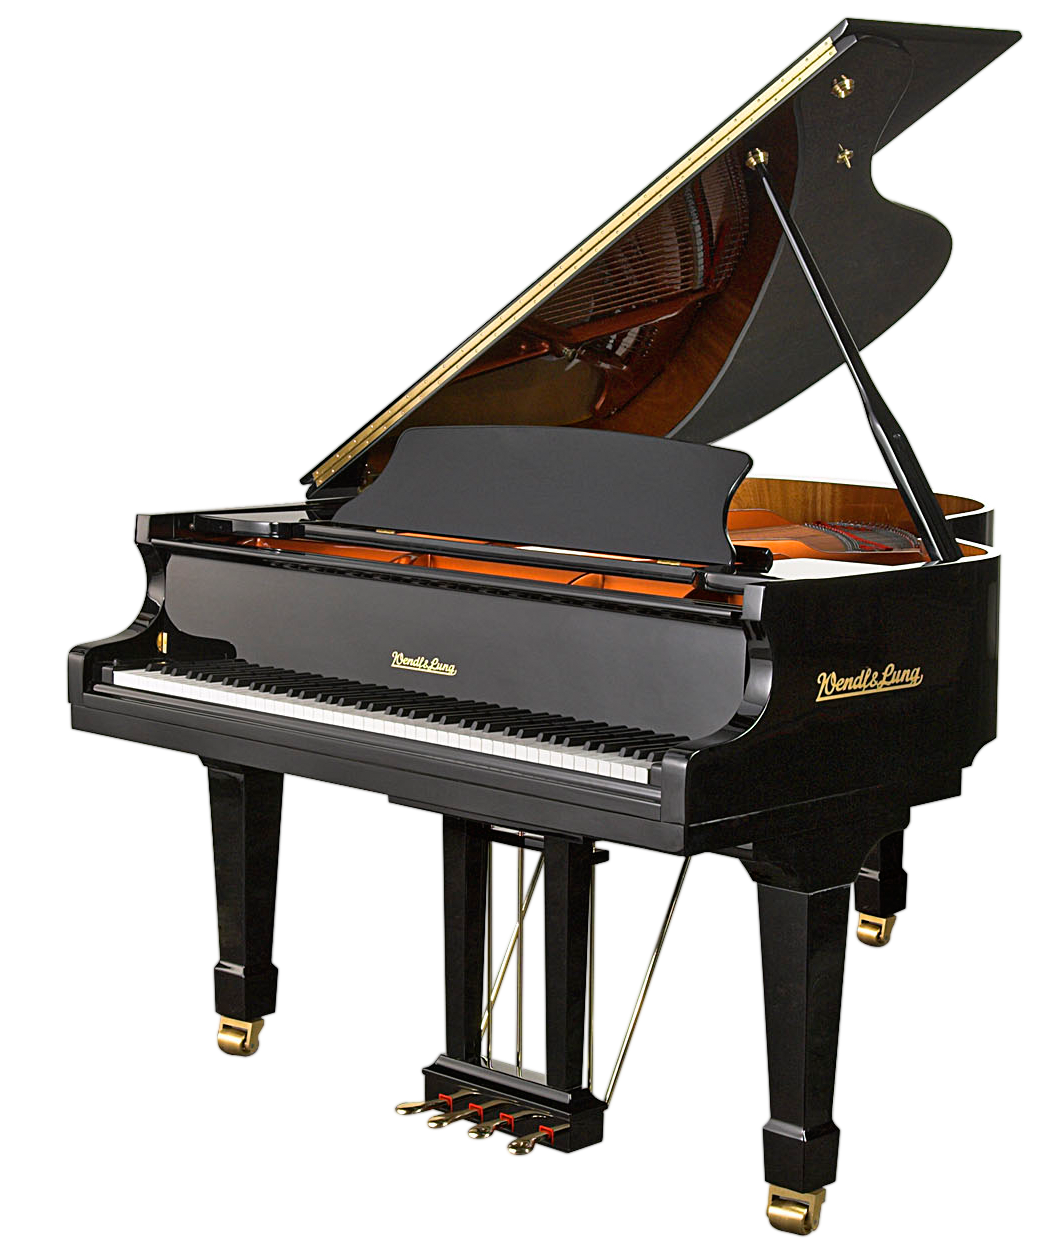 Piano PNG Images Transparent Free Download.